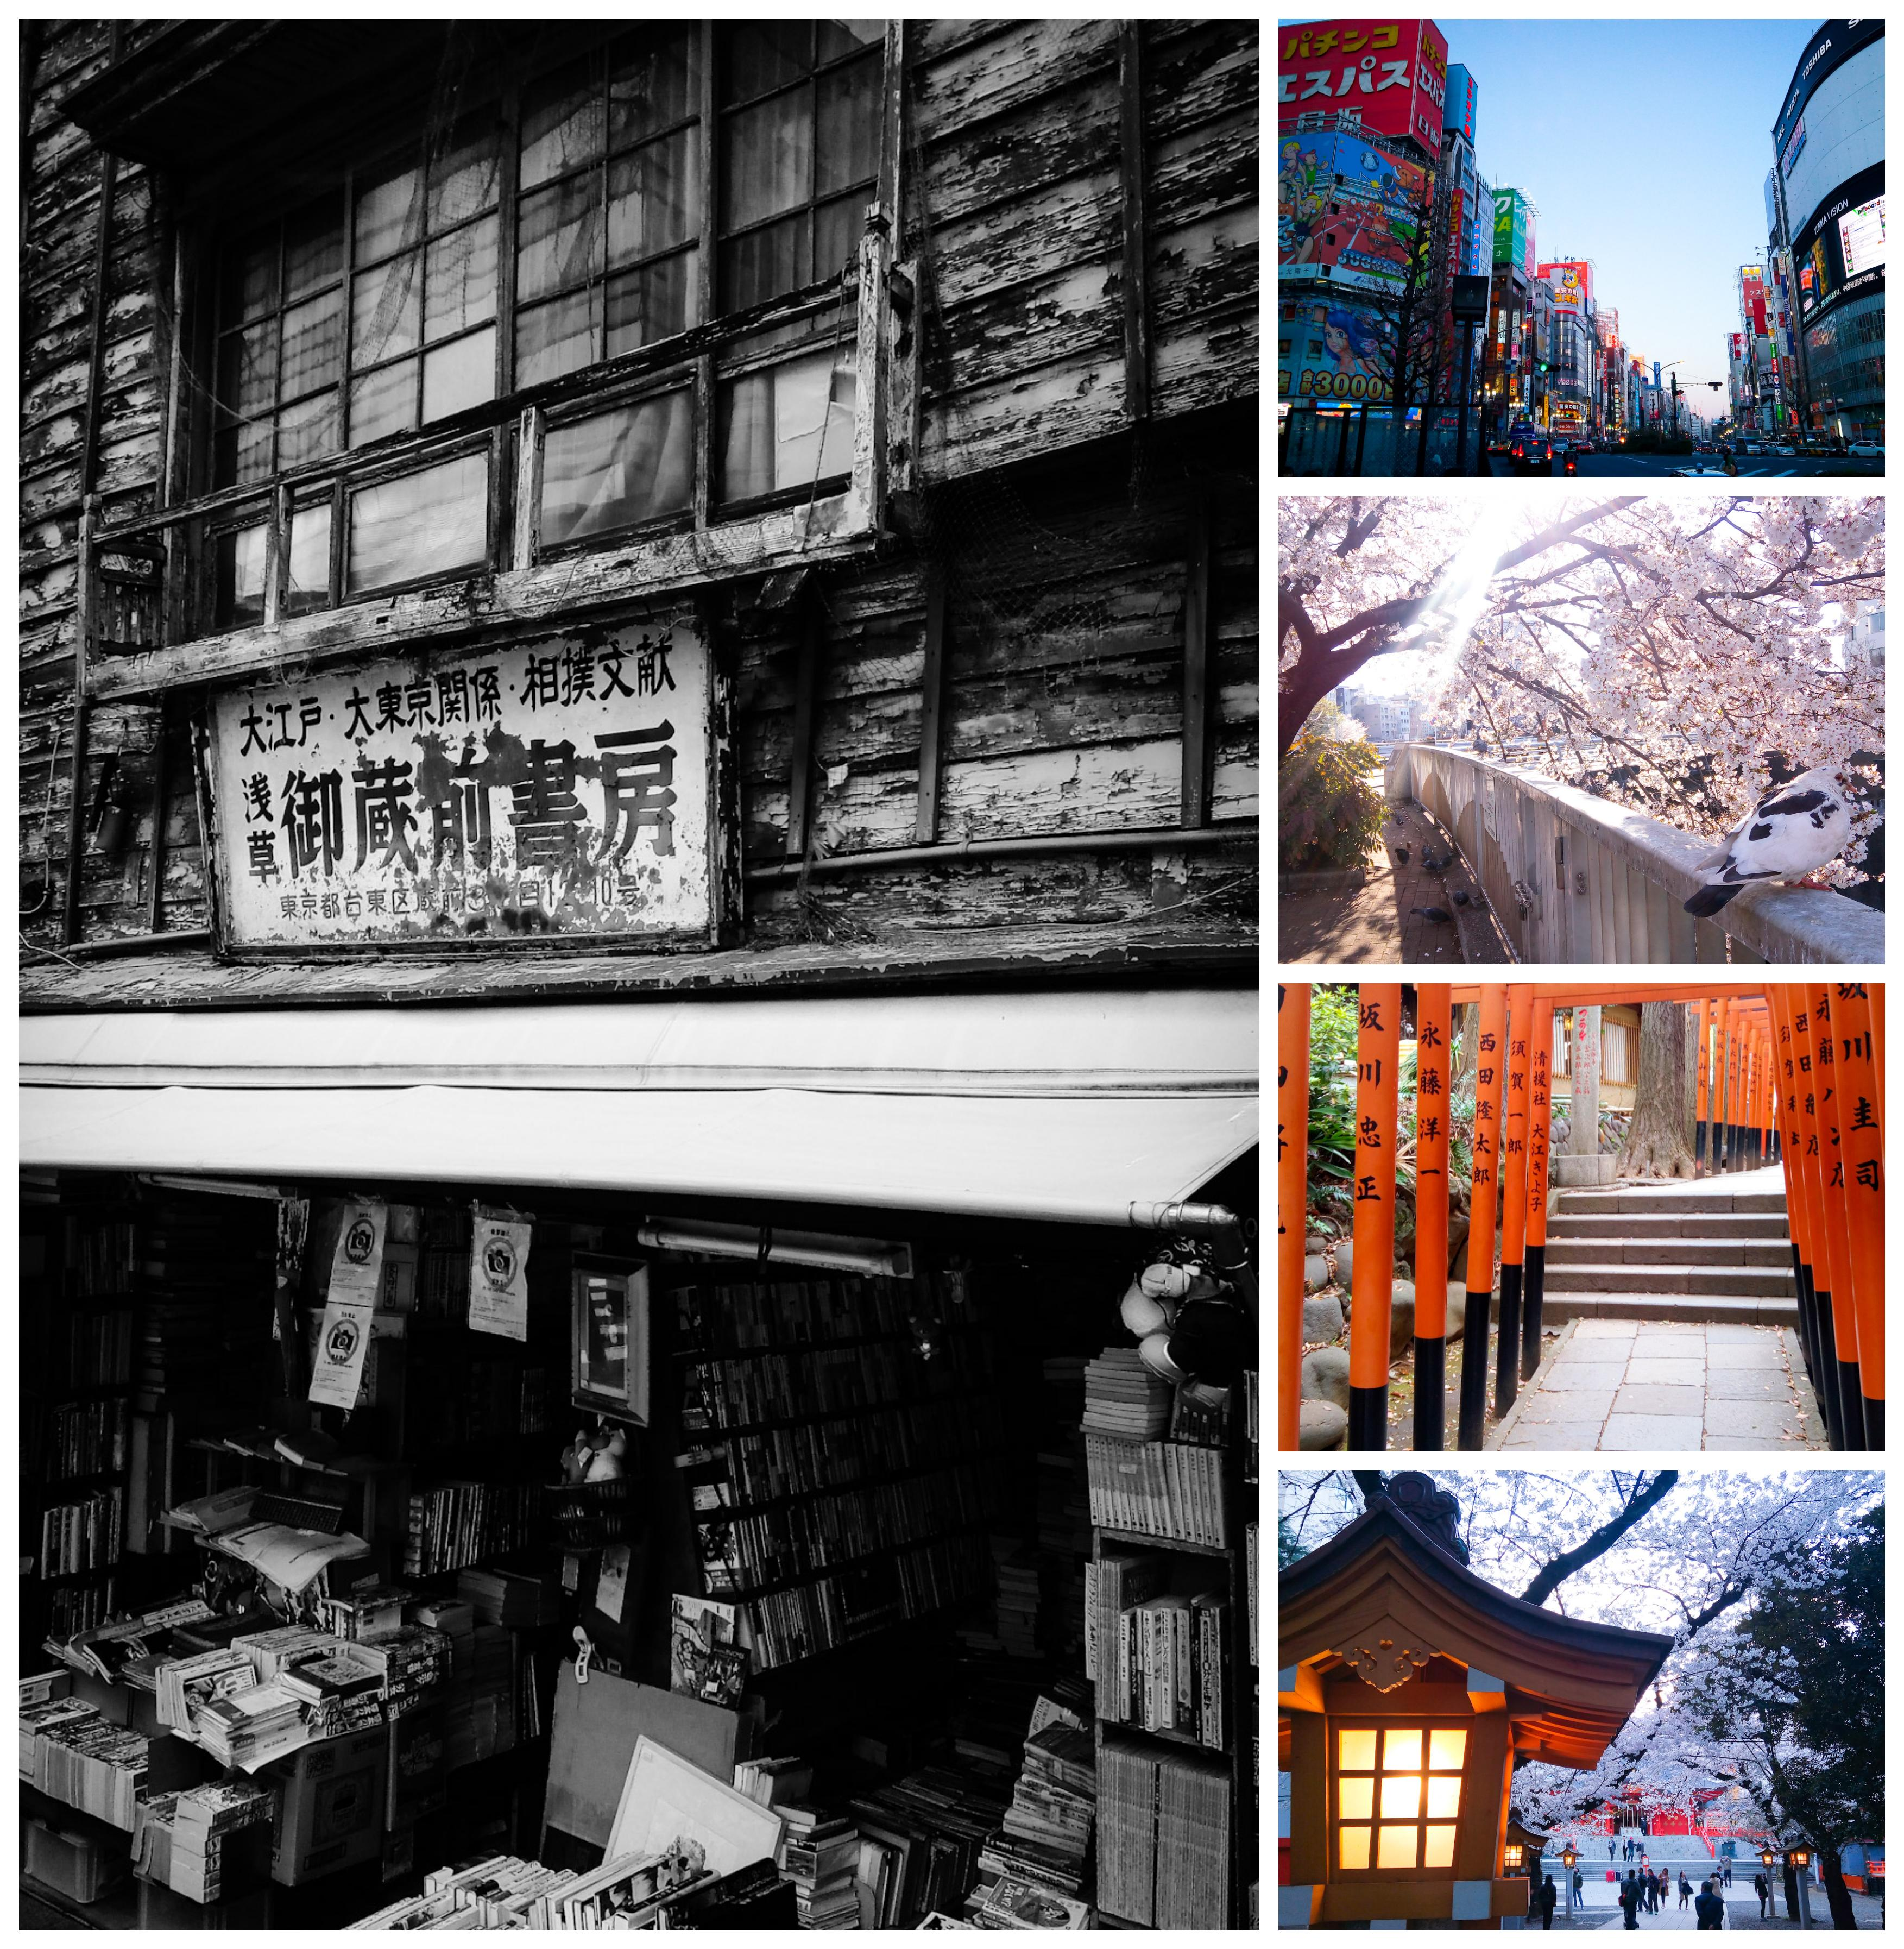 Urban photos - Shinkuku, Tokyo, Japan. 'Walk from Ikebukuro to Shinjuku.' Images taken on a walk from Ikebukuro to Shinjuku. Sometimes, just taking an unplanned stroll through a city, like Tokyo, can reveal unexpected and stunning sights. sketchbookexplorer.com @davidasutton @sketchbookexplorer Facebook.com/davidanthonysutton #japan #ikebukuro #zoshigayakishimoijitemple #shinjuku #travel #travelblog #photography #cheeryblossom #cherryblossomseason